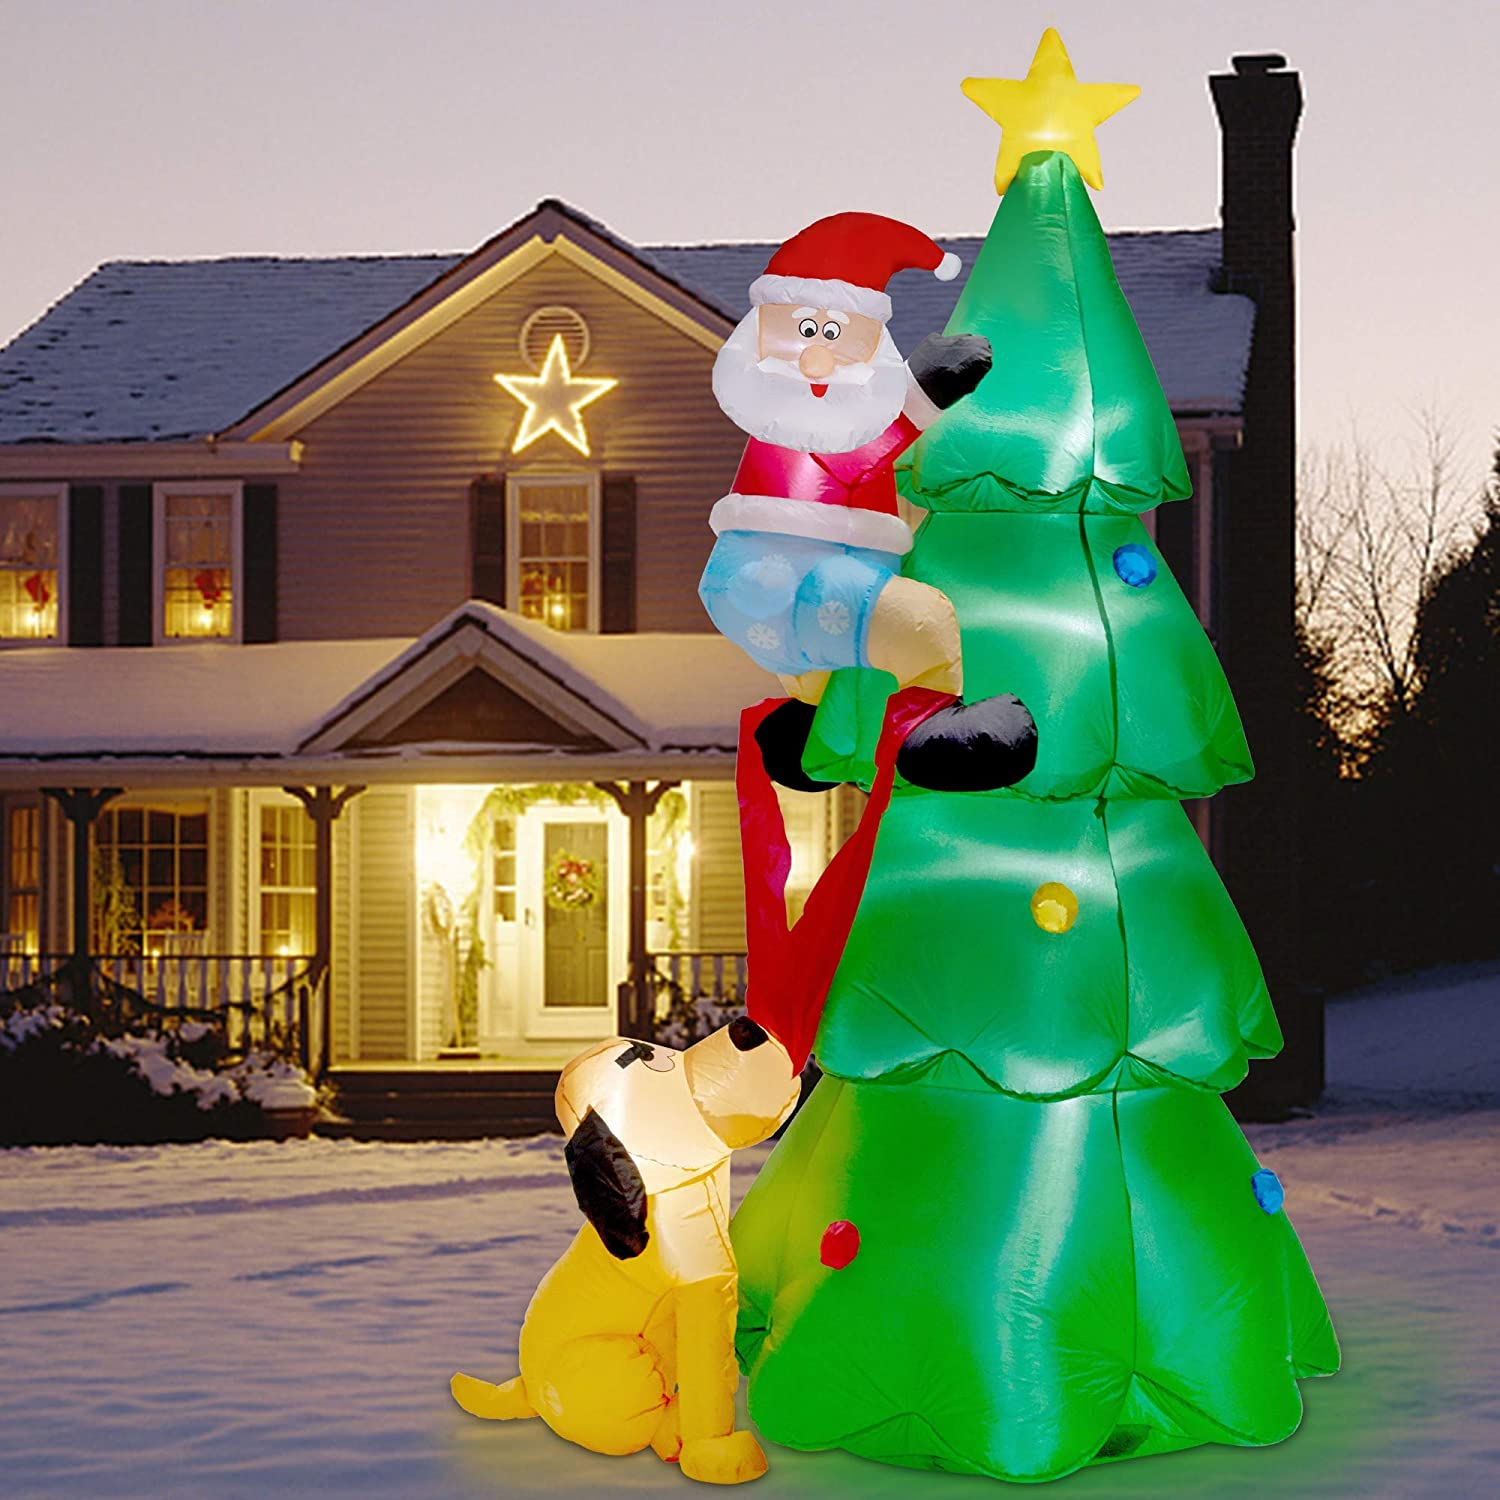 Twinkle Star 7FT Inflatables Lighted Christmas Tree with Santa Claus and Dog, Blow Up Cute Indoor Outdoor Xmas Decor Lawn Yard Garden Decorations